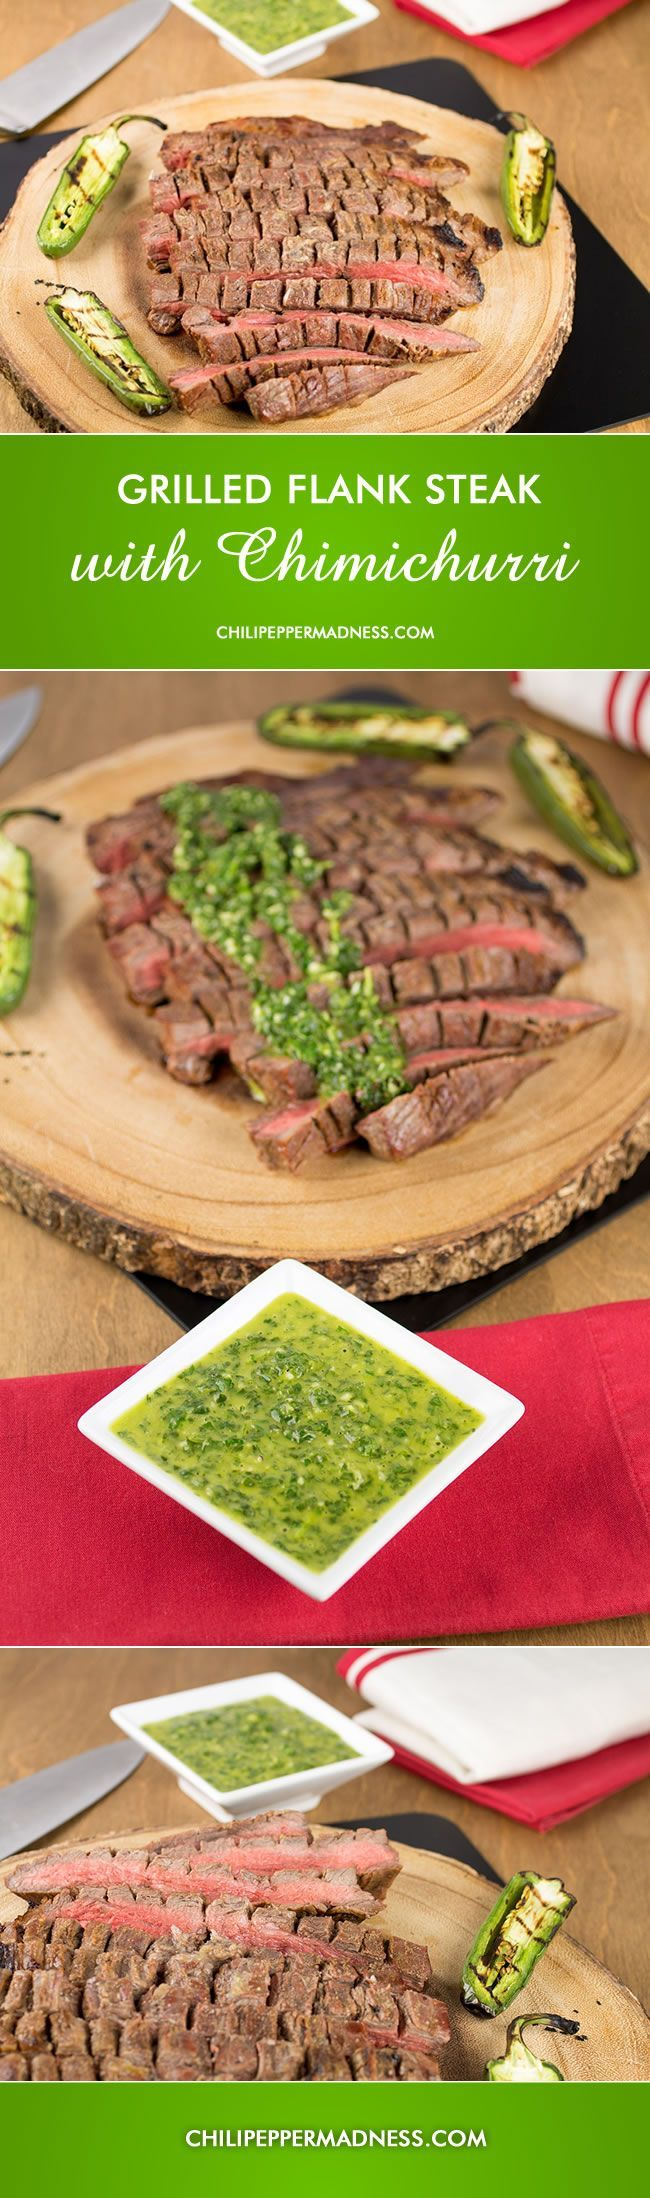 Grilled Marinated Flank Steak with Chimichurri Sauce from http://ChiliPepperMadness.com